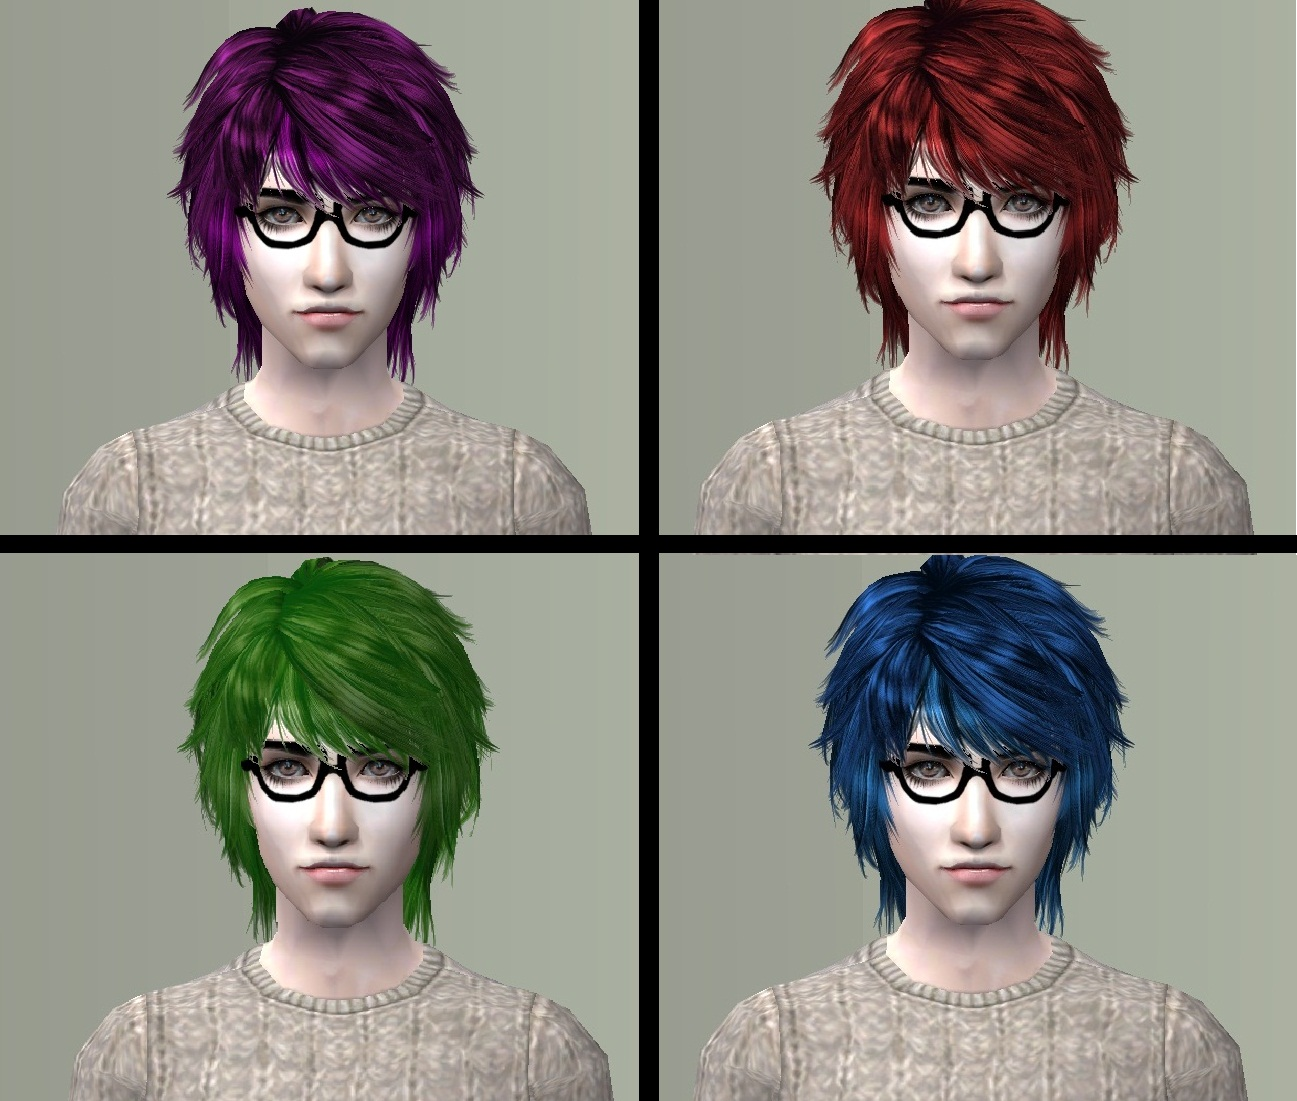 Sims 2 Hairstyles: New Recolors Of Sizz-Hanui Hair